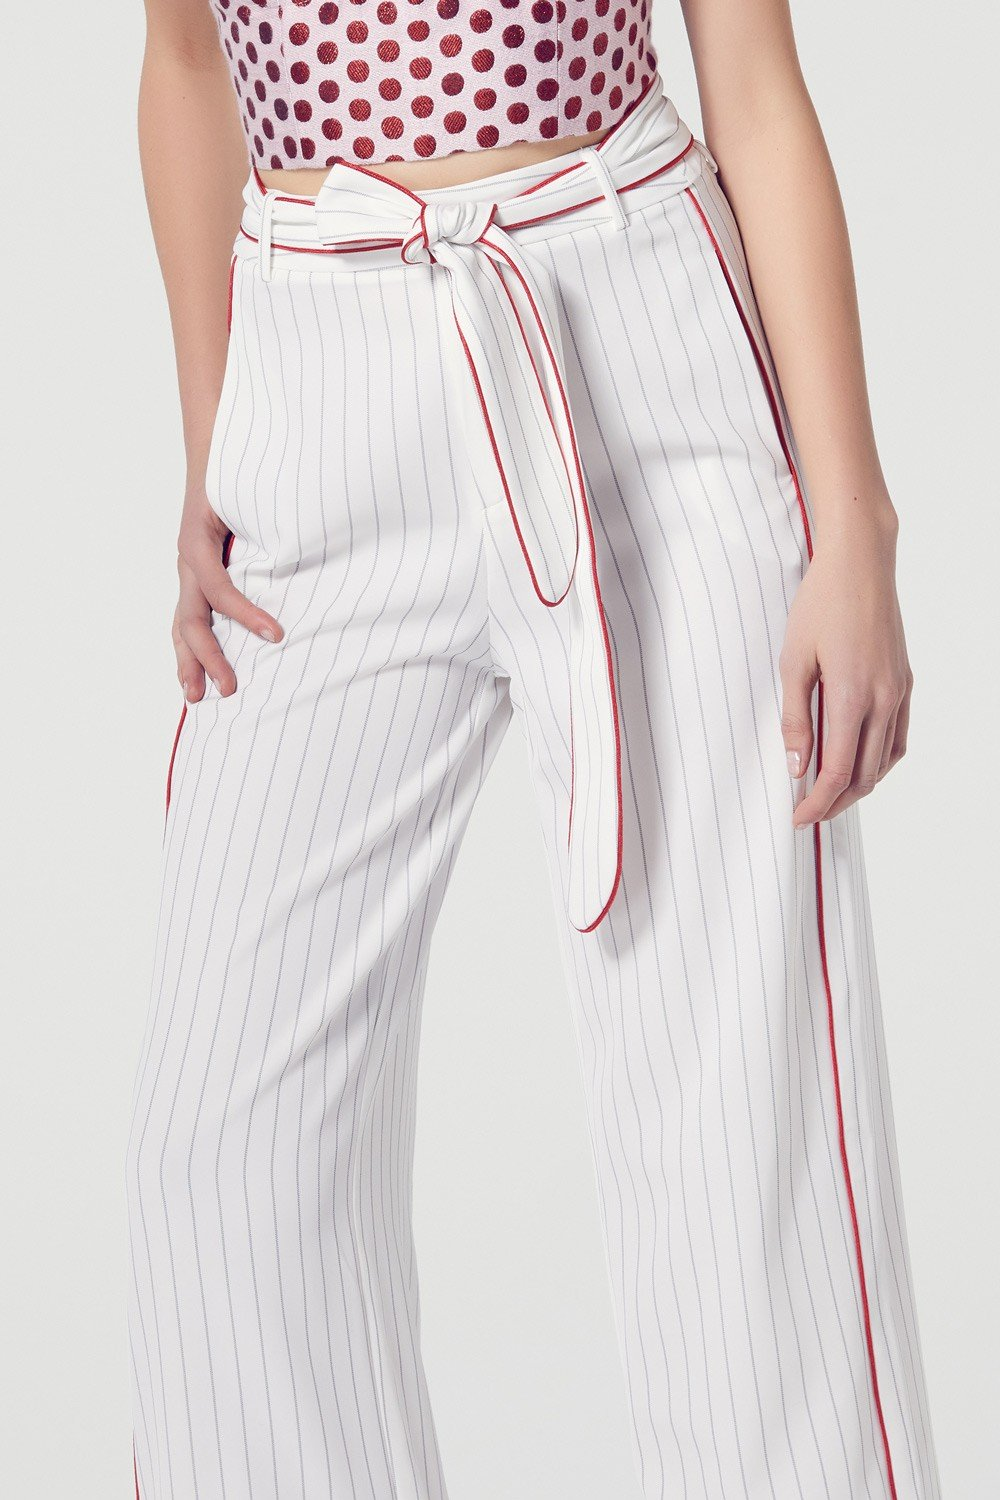 ATOIR The Caretaker Wide Leg Pinstripe Pants in White-Lookbook Boutique